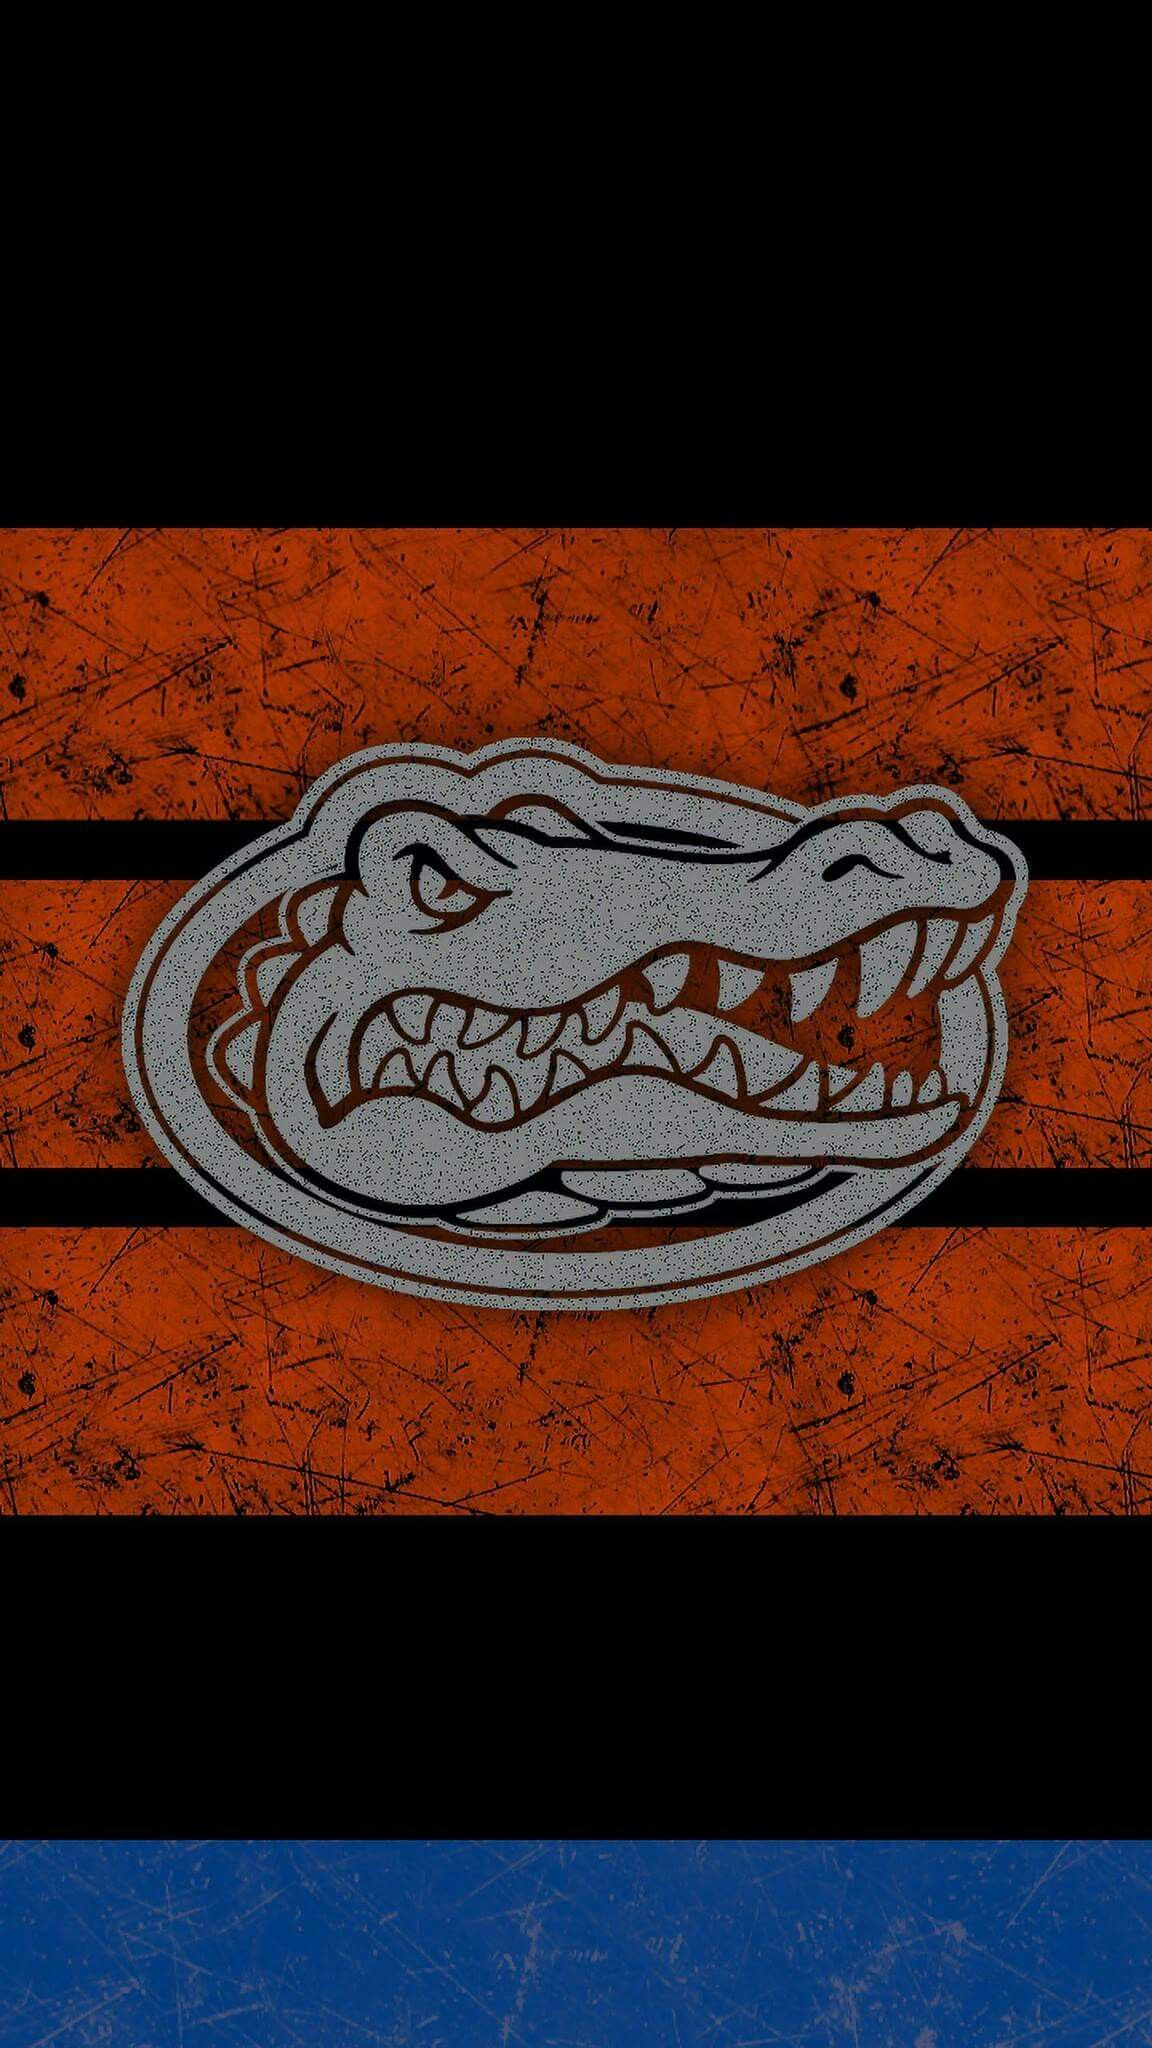 Pin by ★⋰⋱★Chevy Brown★⋰⋱★ on Wallpapers♥ Florida gators